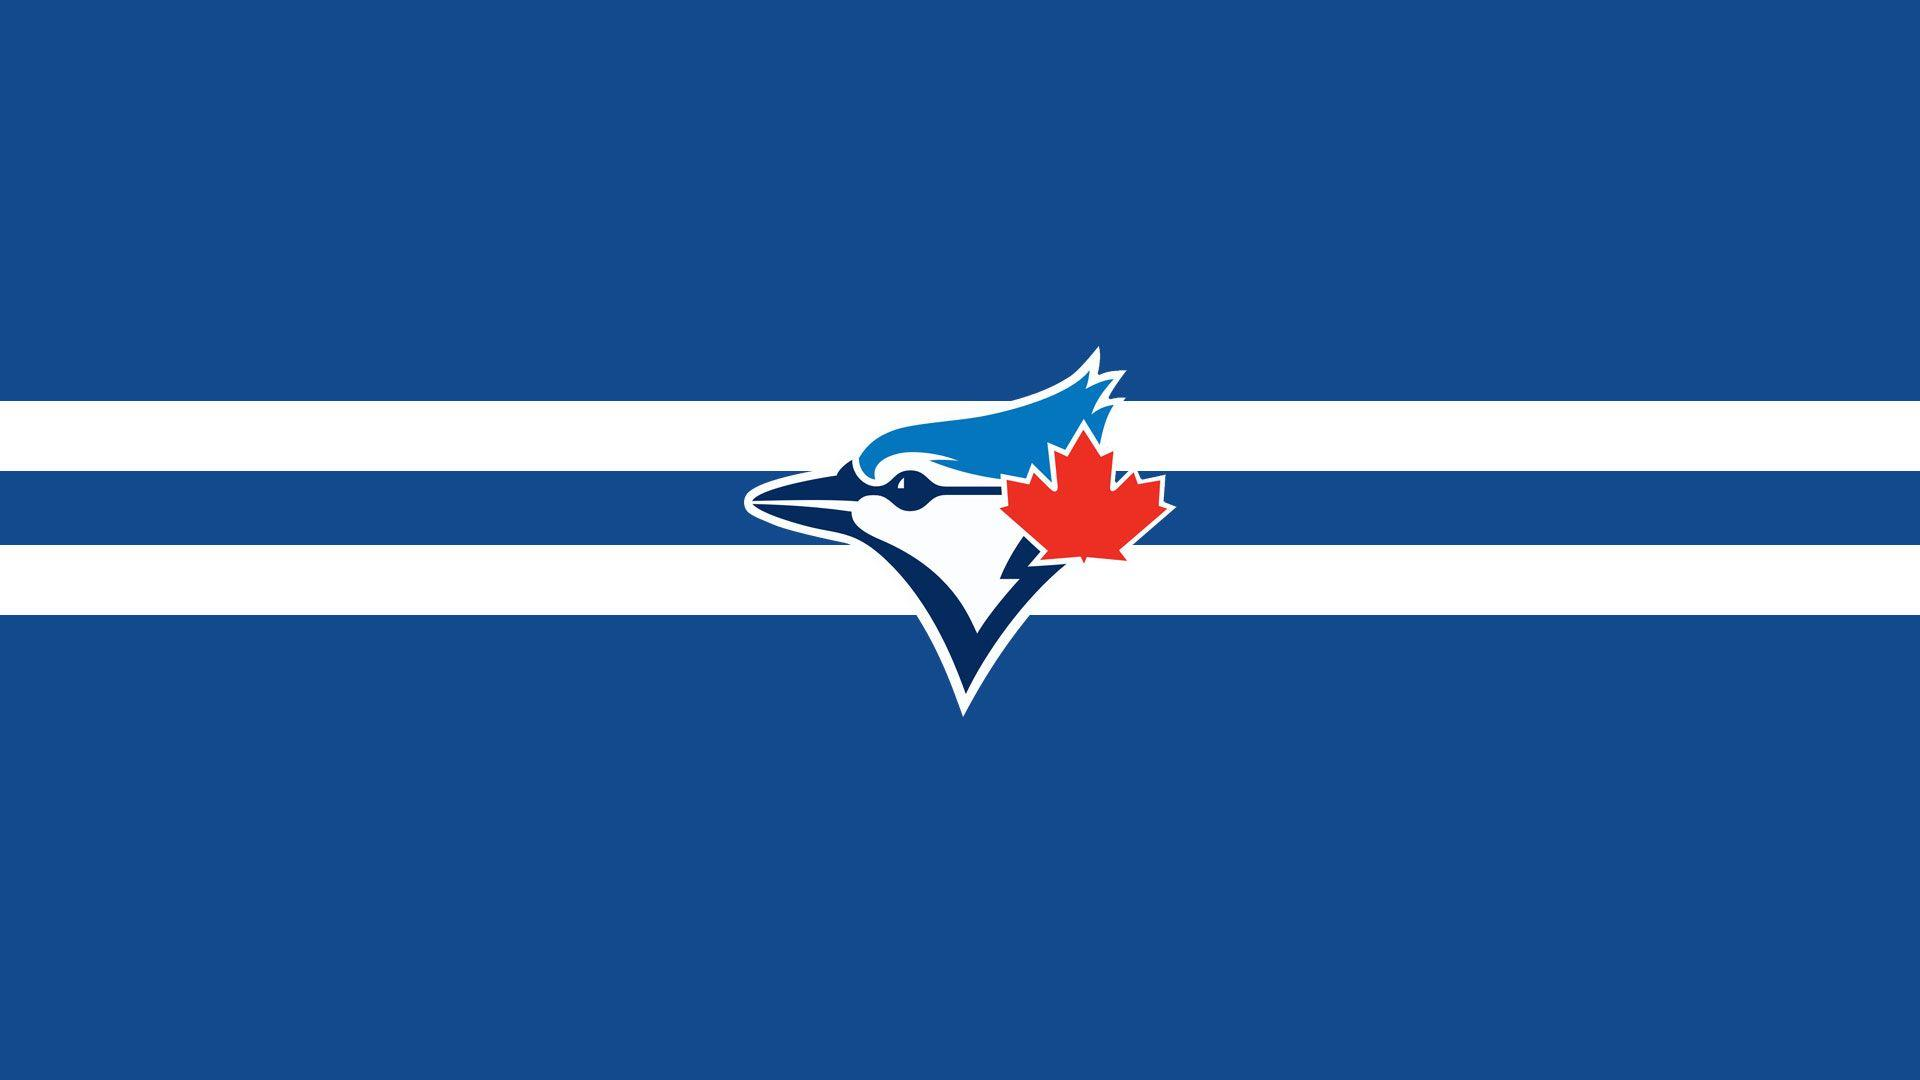 7 HD Toronto Blue Jays Wallpapers